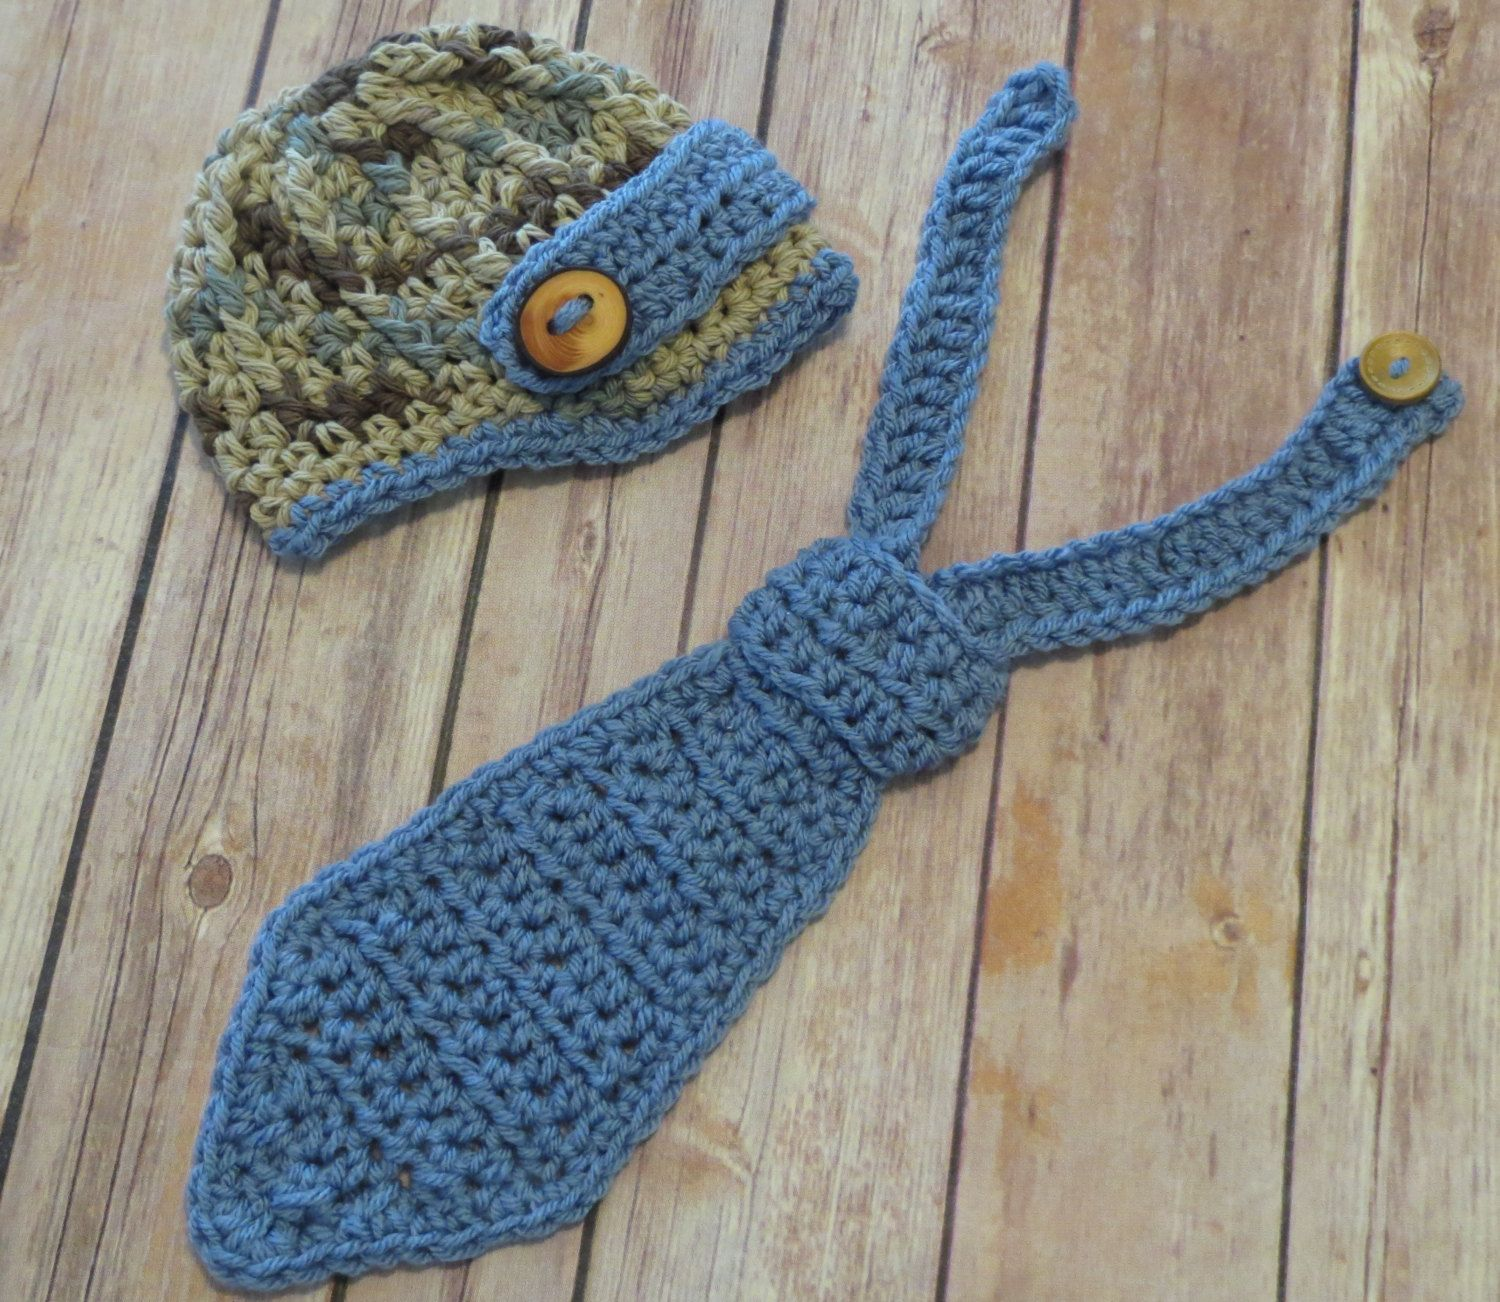 On Sale! Ready to Ship Sz. 0-3 month NEWSBOY Hat & Tie, NEWBORN Photo Props, Shower Gift, brown w/blue necktie and hat, bringing home baby by kimcrochetcreations on Etsy